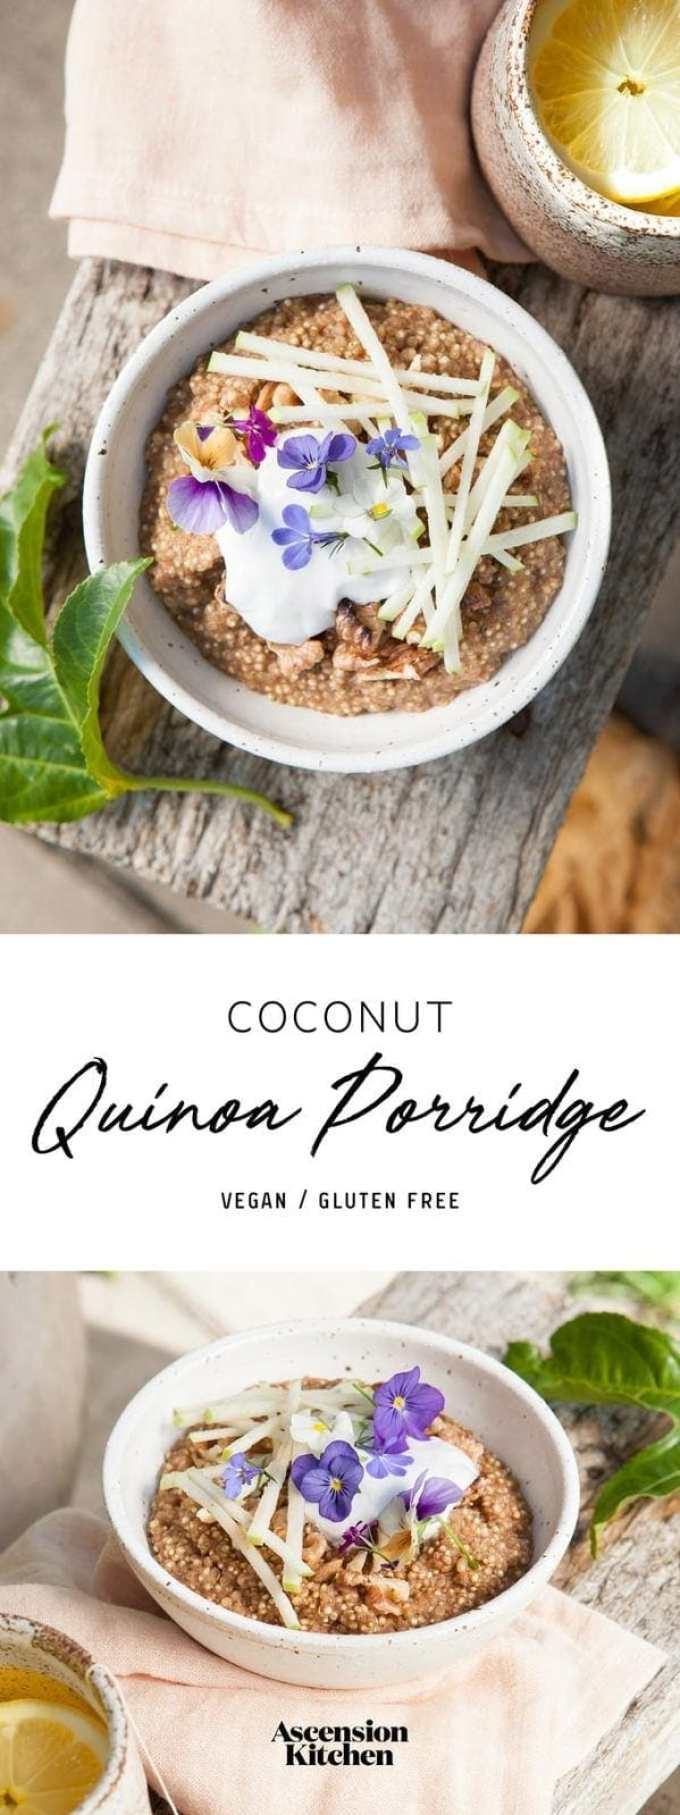 Coconut Quinoa Porridge made with warming aromatic spices. Sprout the quinoa for extra nutrition. #quinoaporridge #quickquinoaporridge #quinoaporridgecoconutmilk #quinoaporridgevegan #quinoaporridgerecipe #quinoaporridgeovernight #quinoaporridgecoconut #quinoaporridgehealthy #AscensionKitchen // Pin to your own inspiration board! //